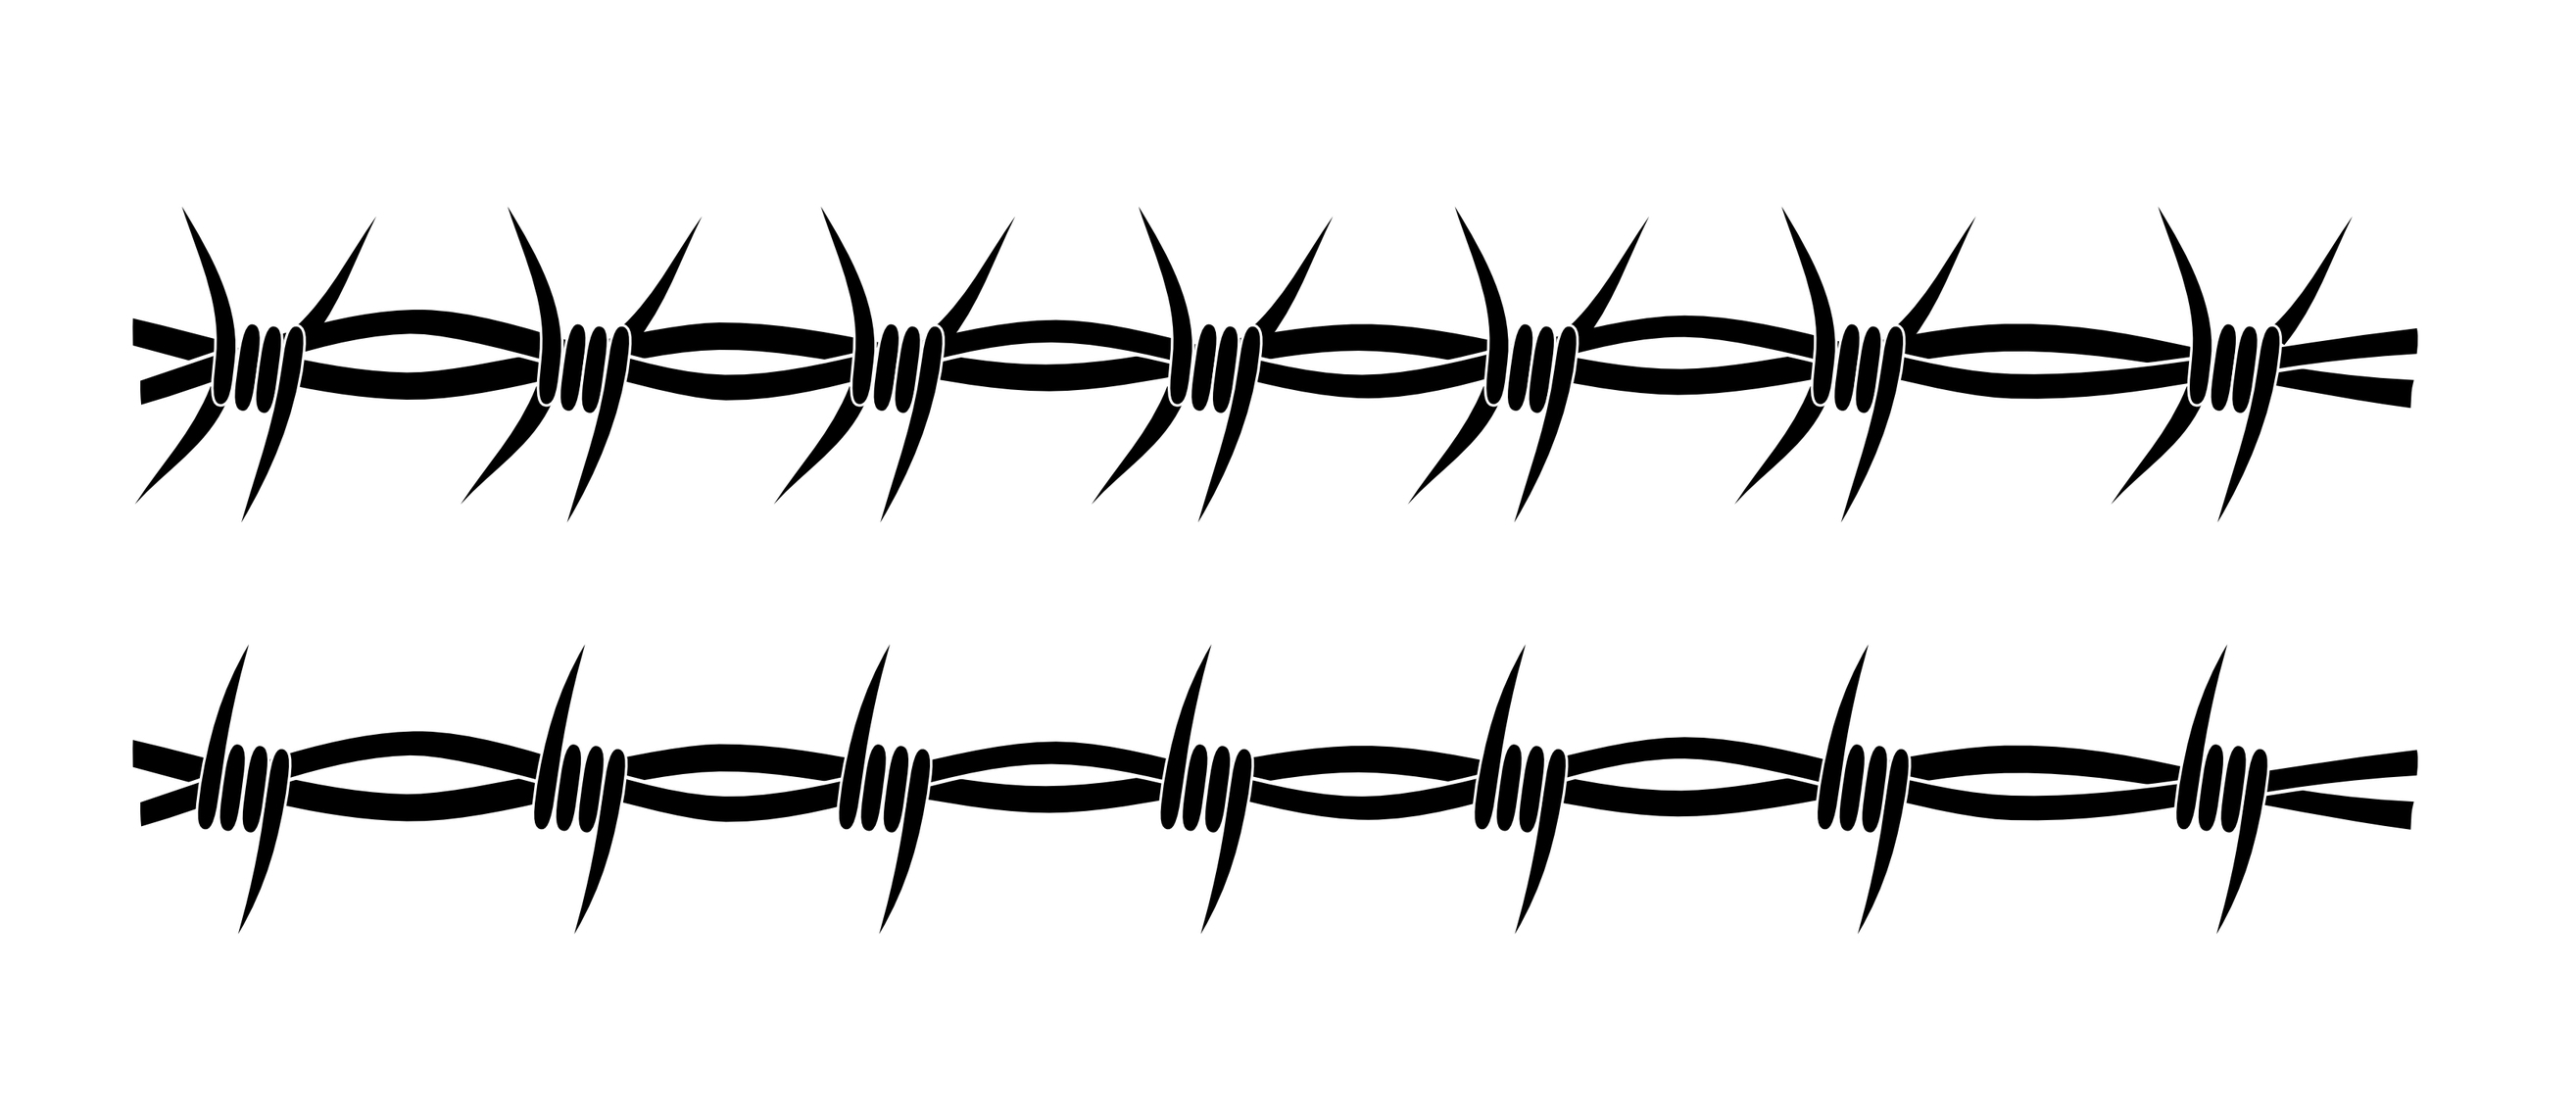 Barb wire clipart 20 free Cliparts | Download images on ...